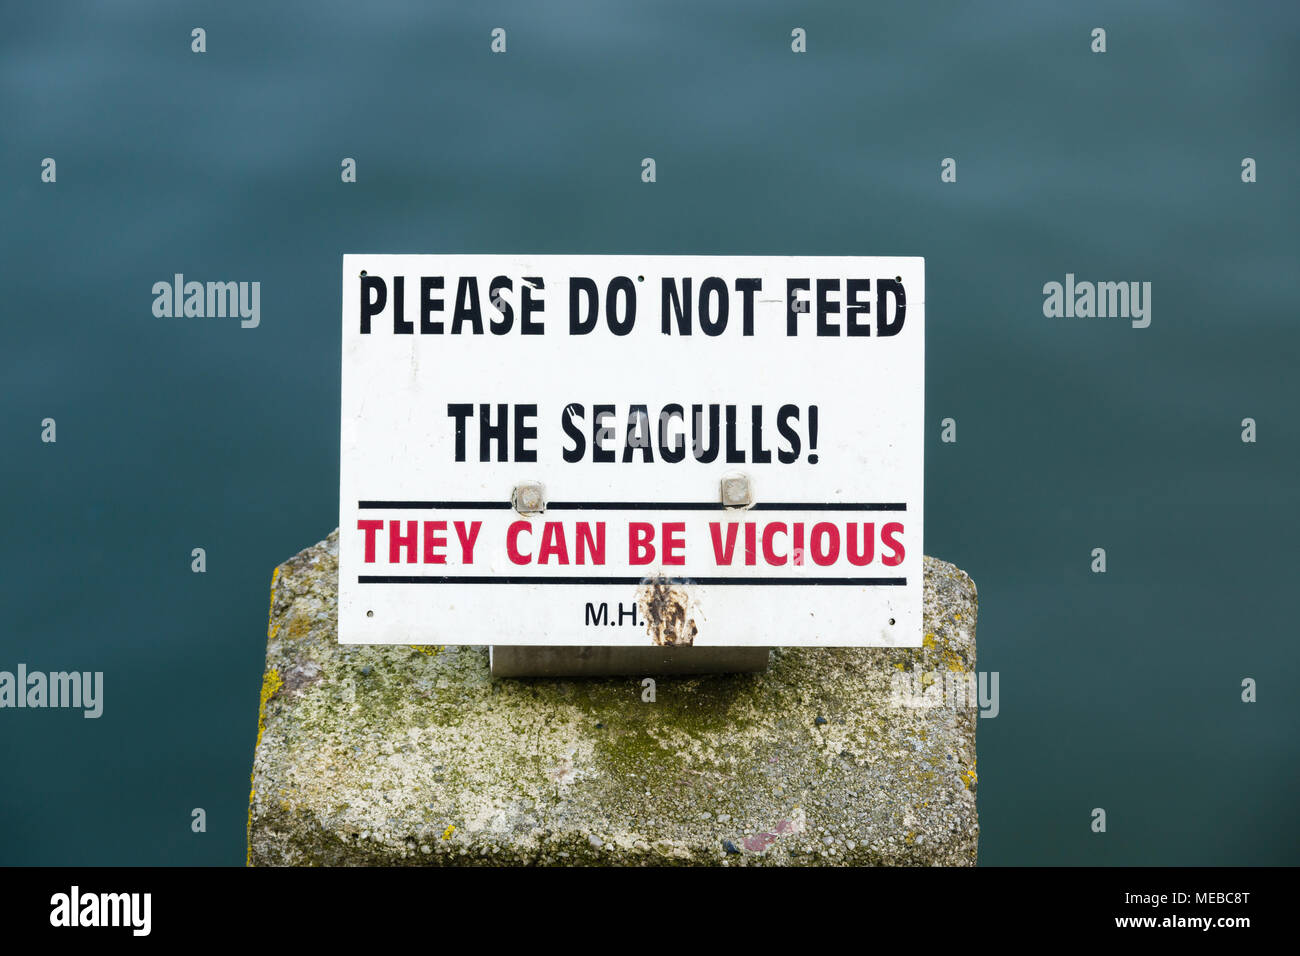 Please do not feed the seagulls sign with the warning that they can be vicious to discourage agressive behaviour and attacks in Mevagissey Cornwall Stock Photo